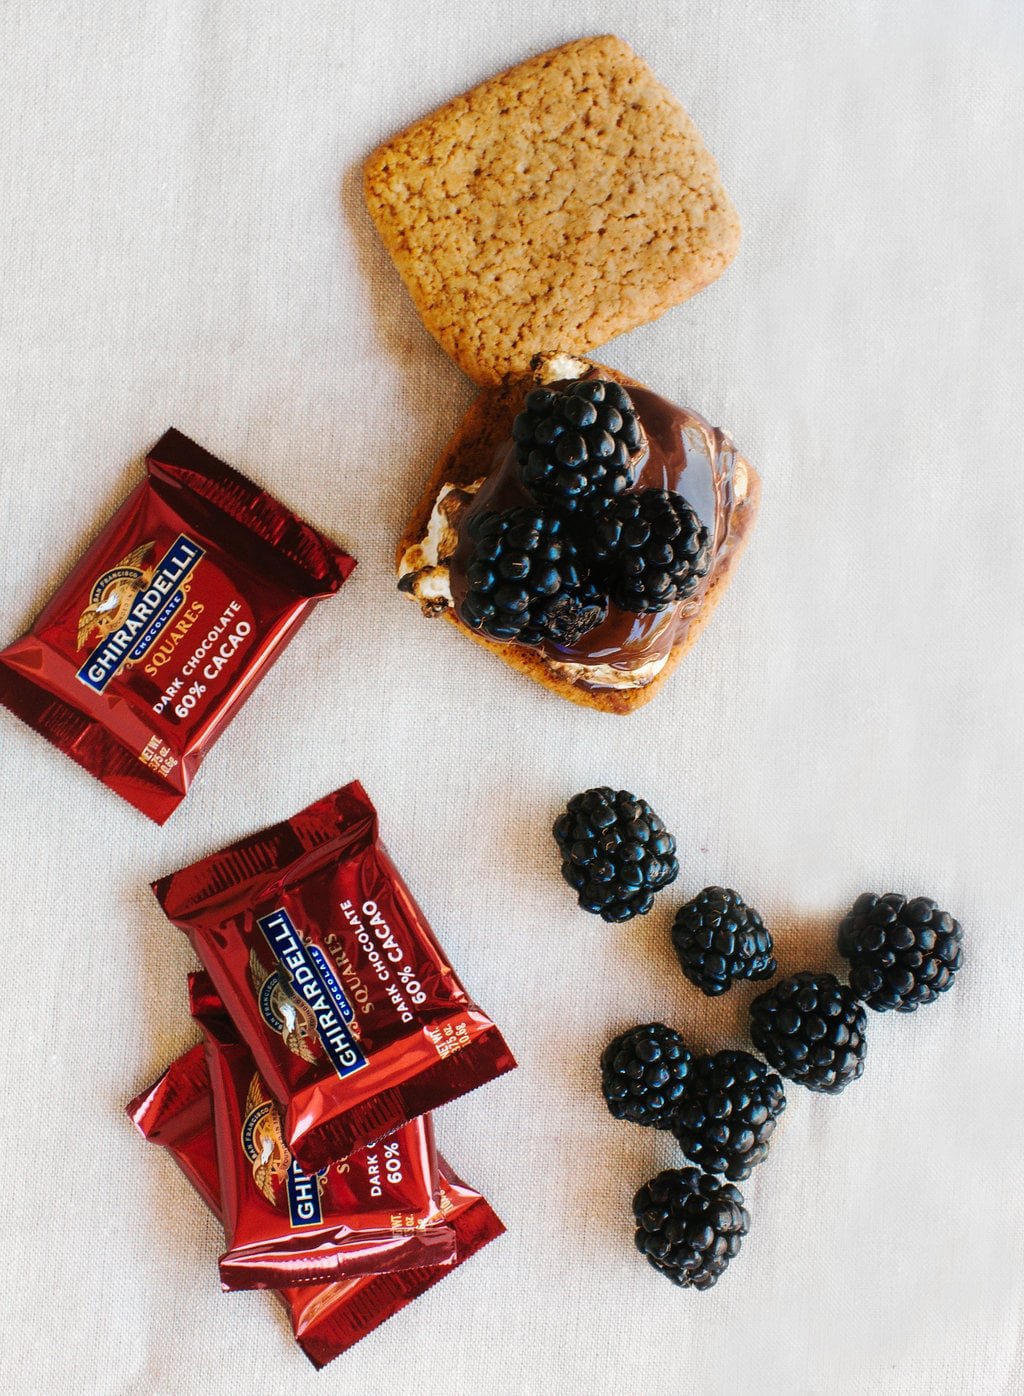 S'mores with fresh fruit like blackberries are the perfect summer dessert!